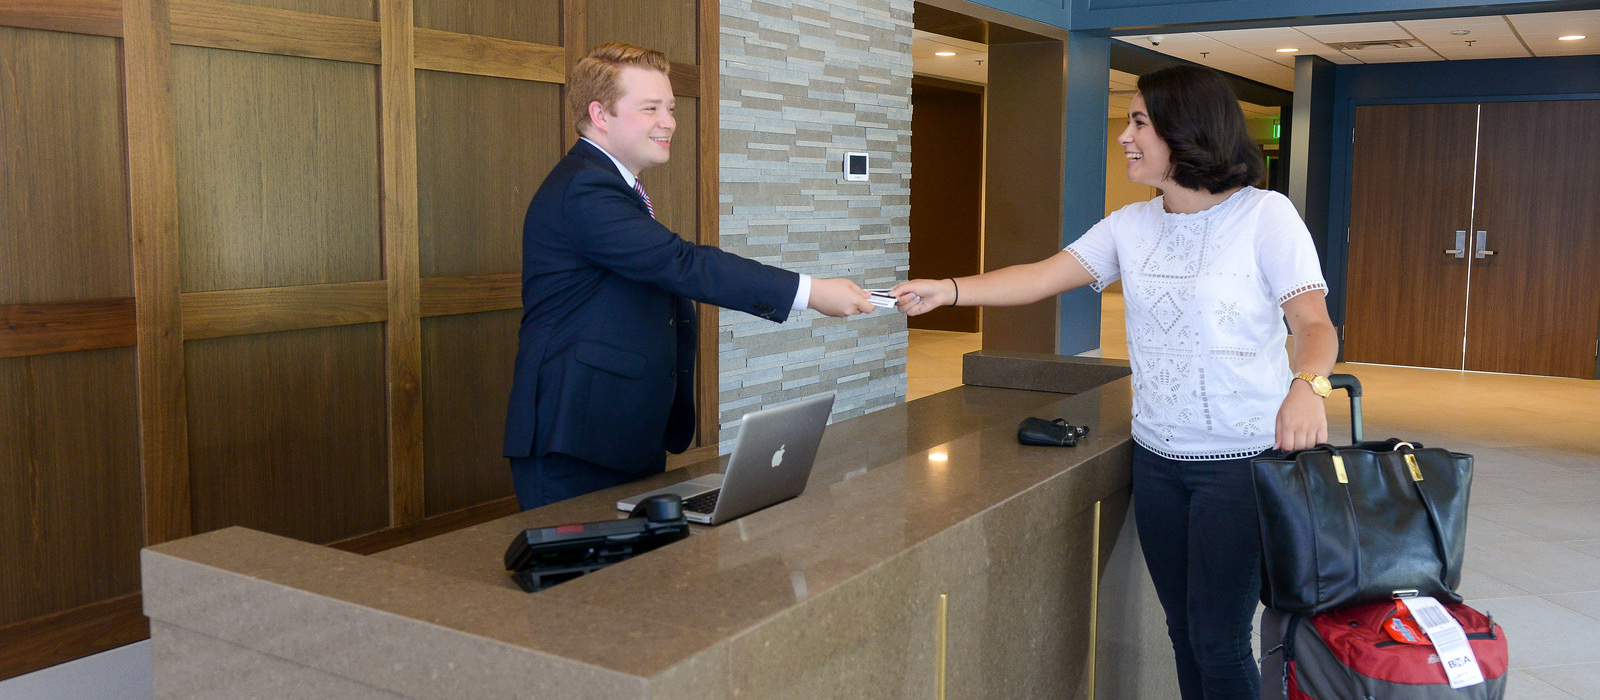 Two students shake hands in a hotel setting.